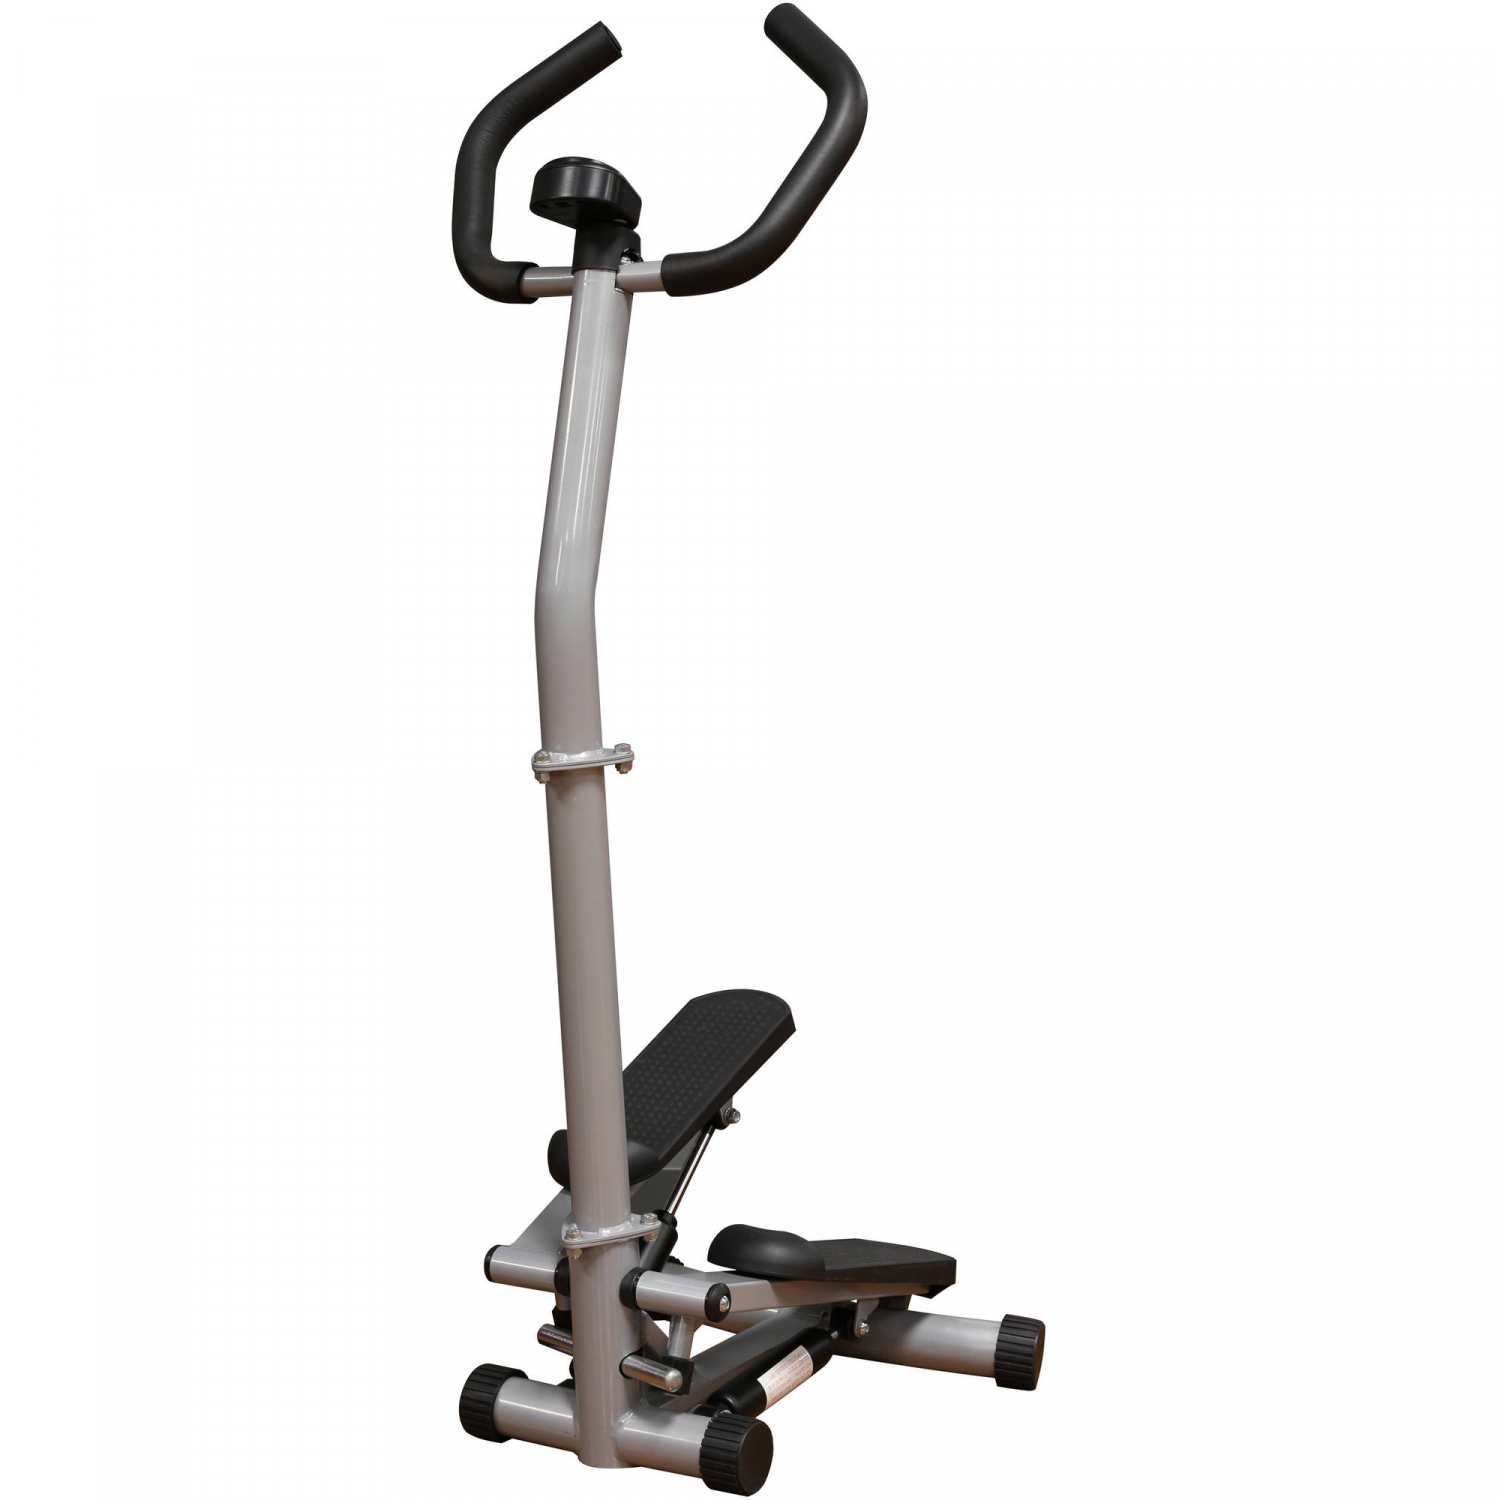 Marcy Mini Stepper w// Assist HandlesMS-95 Compact Exercise Stepping Device